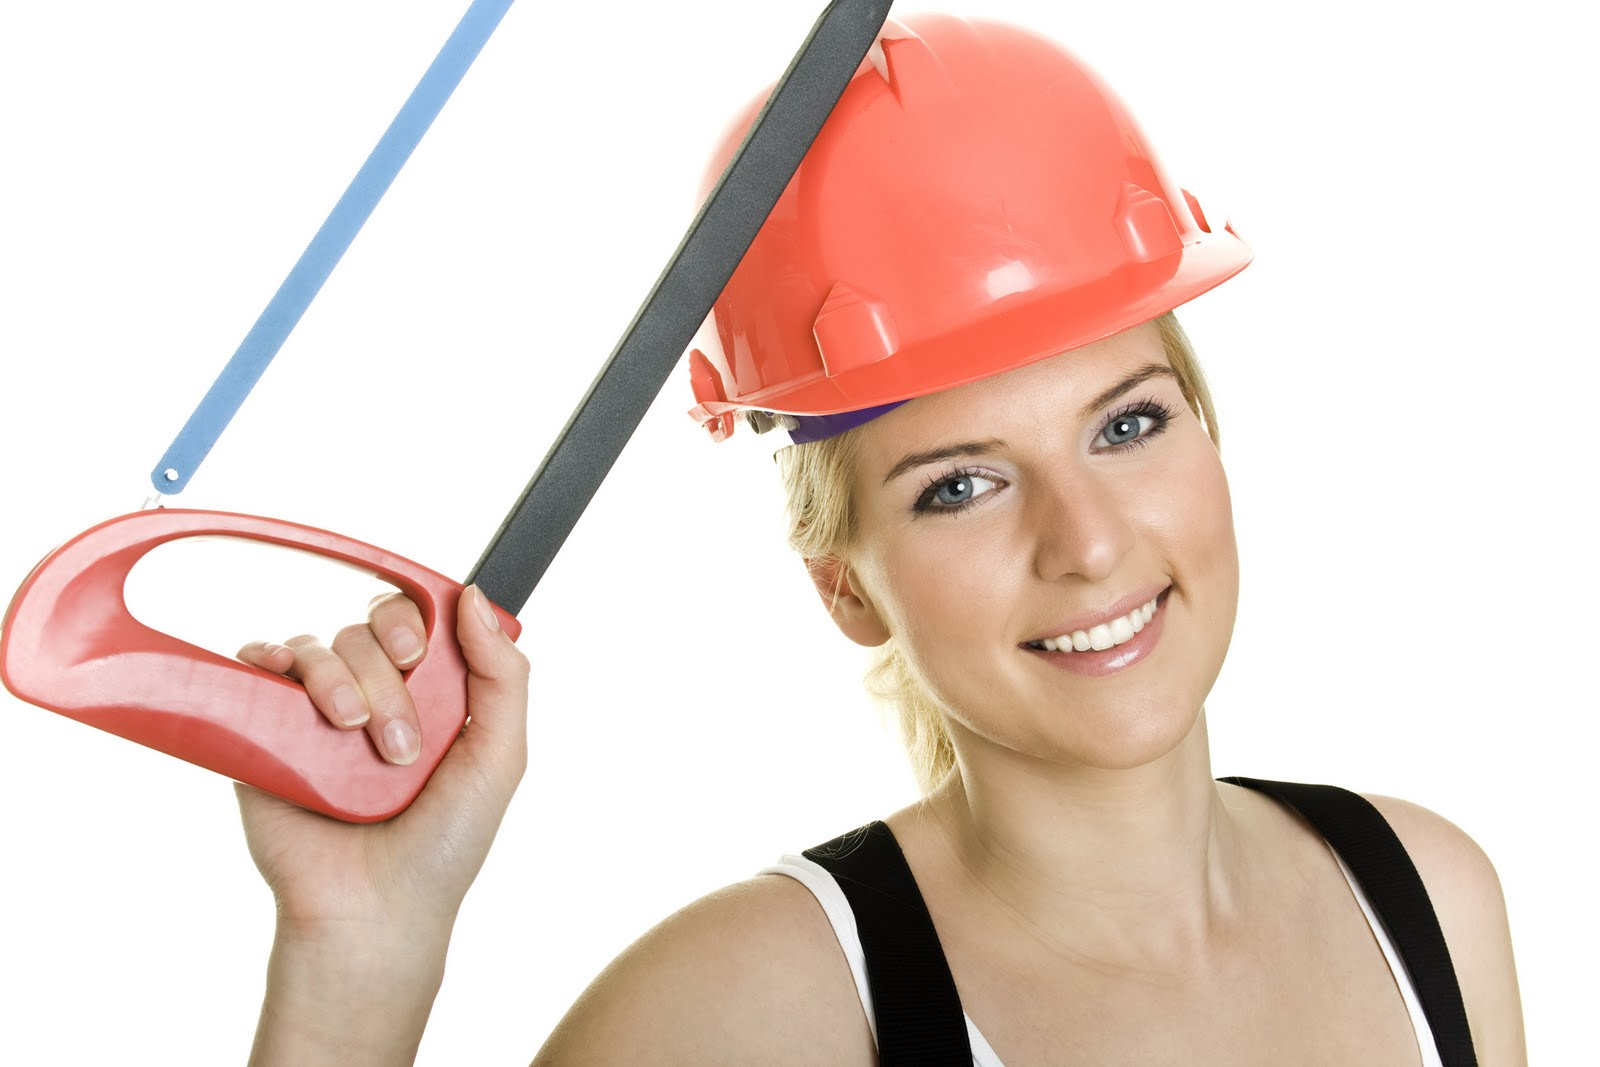 Construction Girls http://allerair.blogspot.com/2011/09/fan-of-diy-study-links-home-renos-and.html